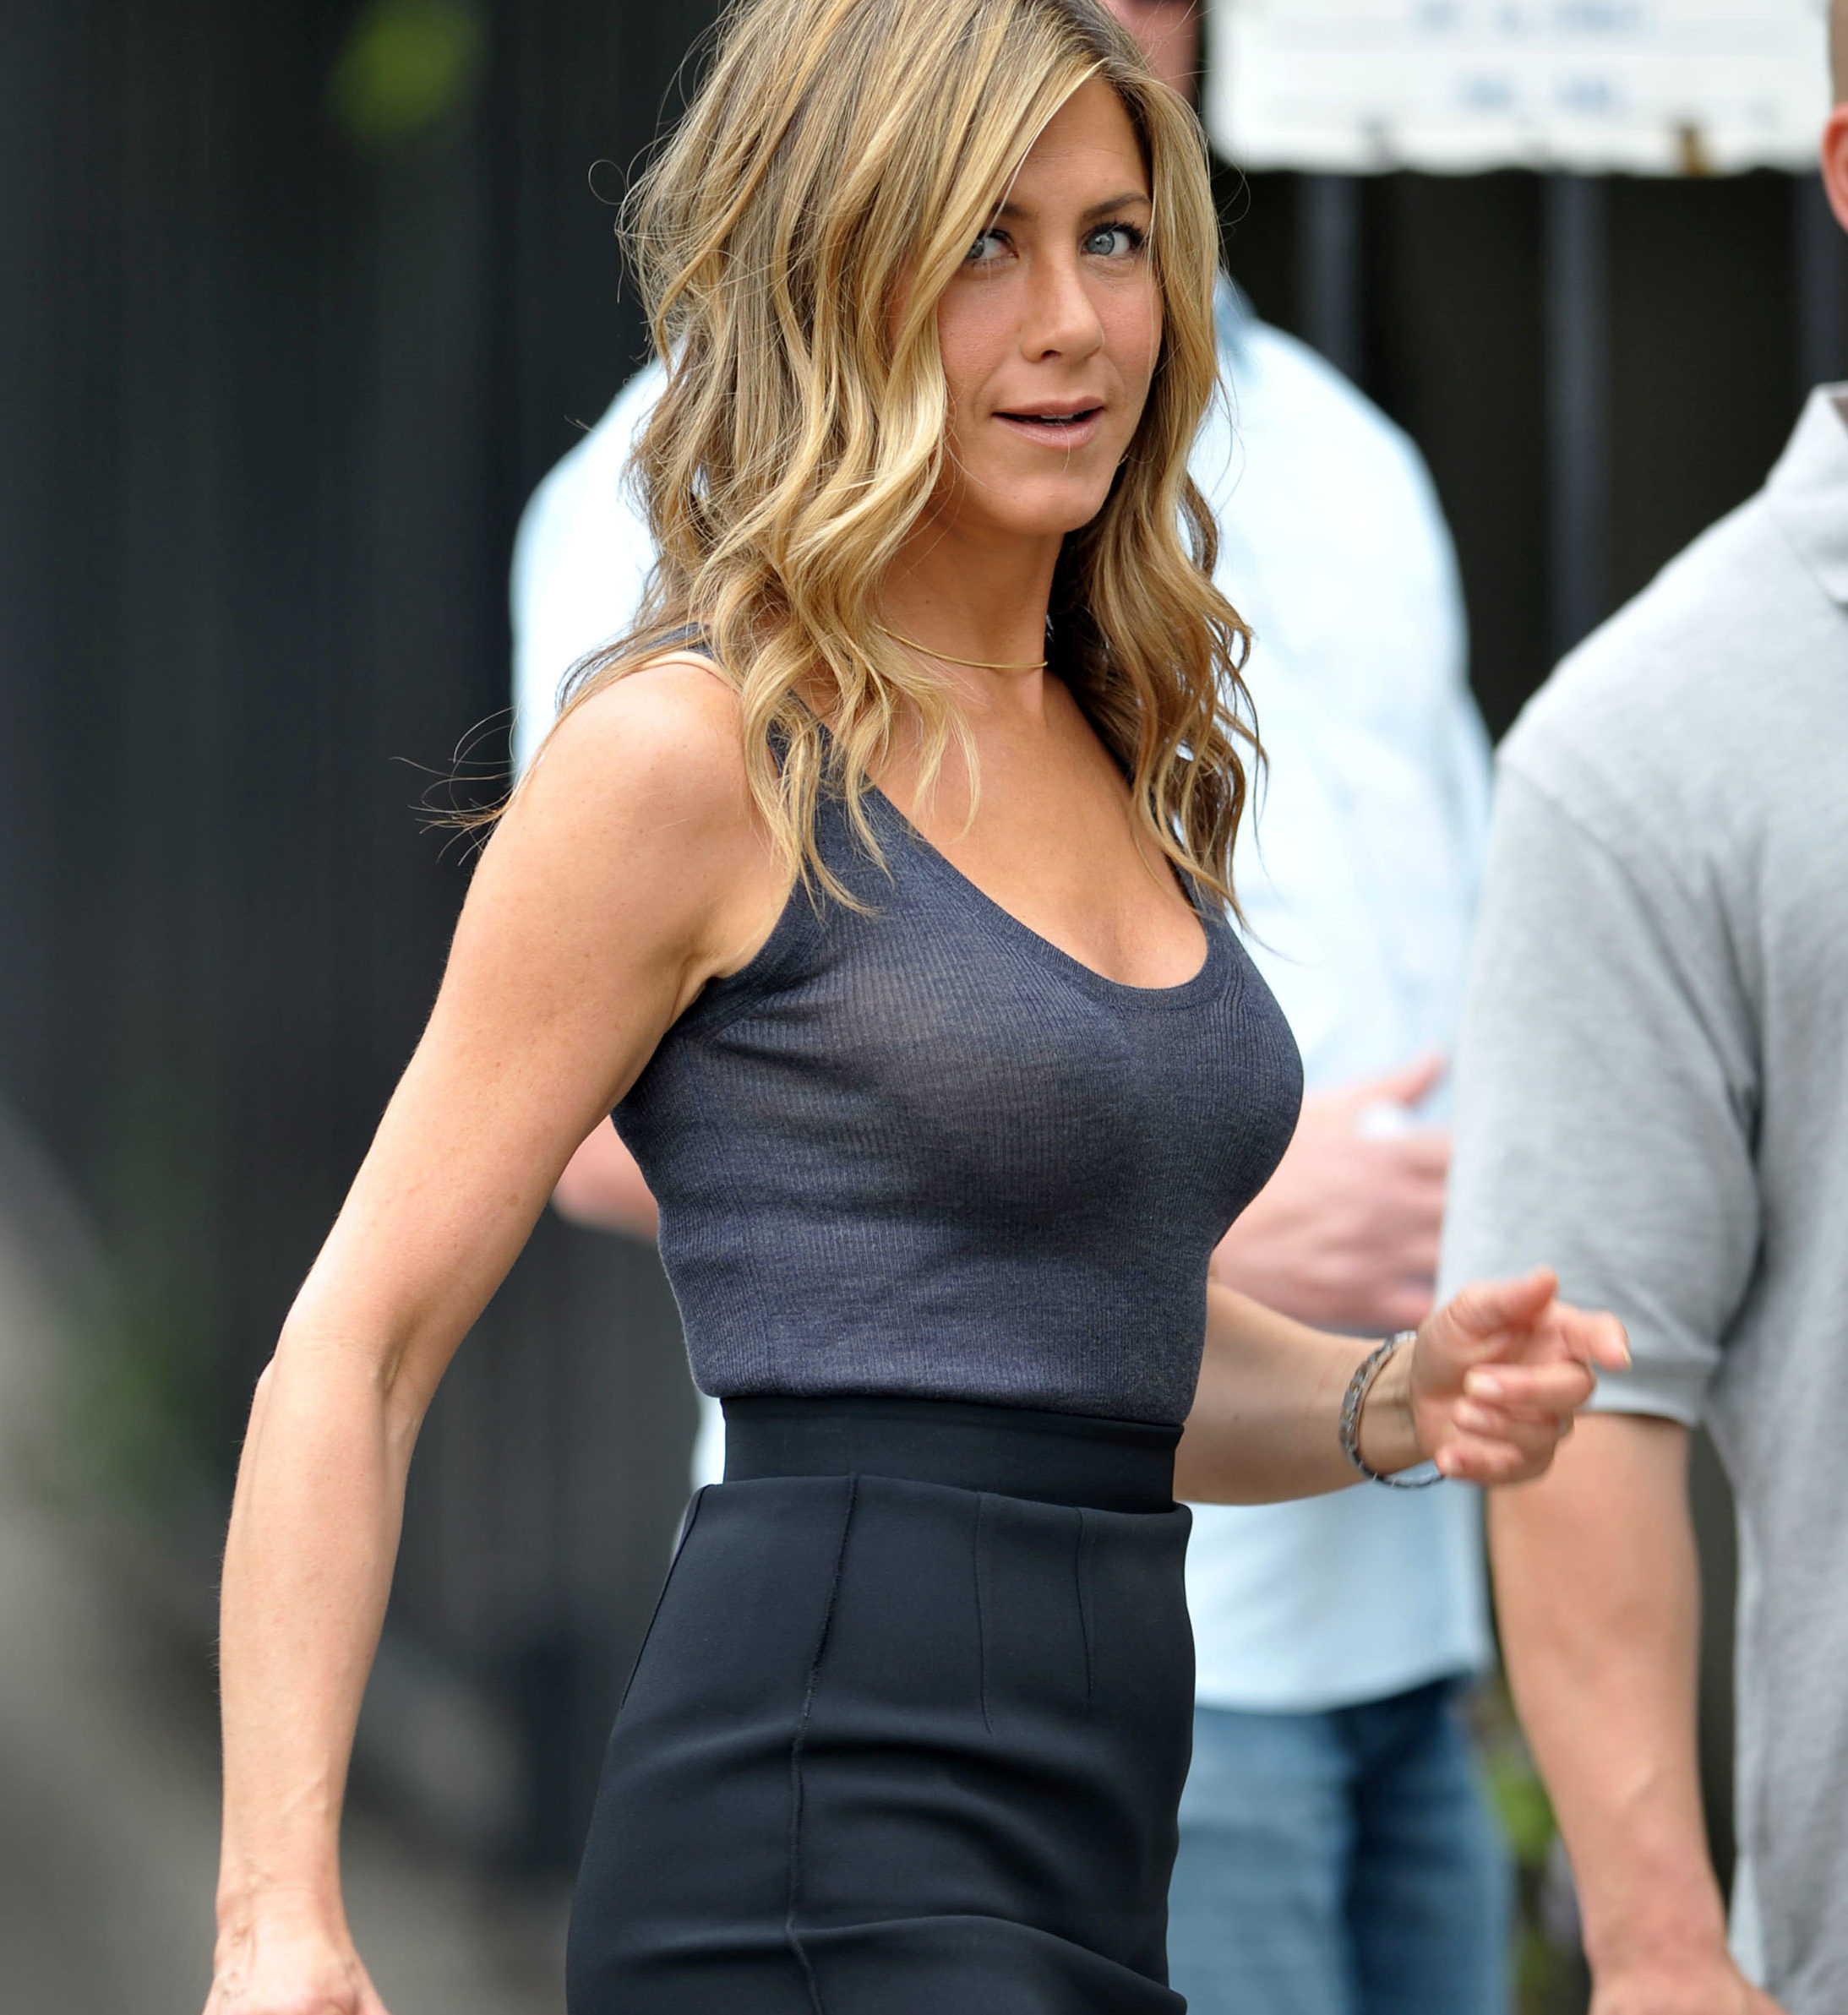 ennifer Aniston most fit celebrity women